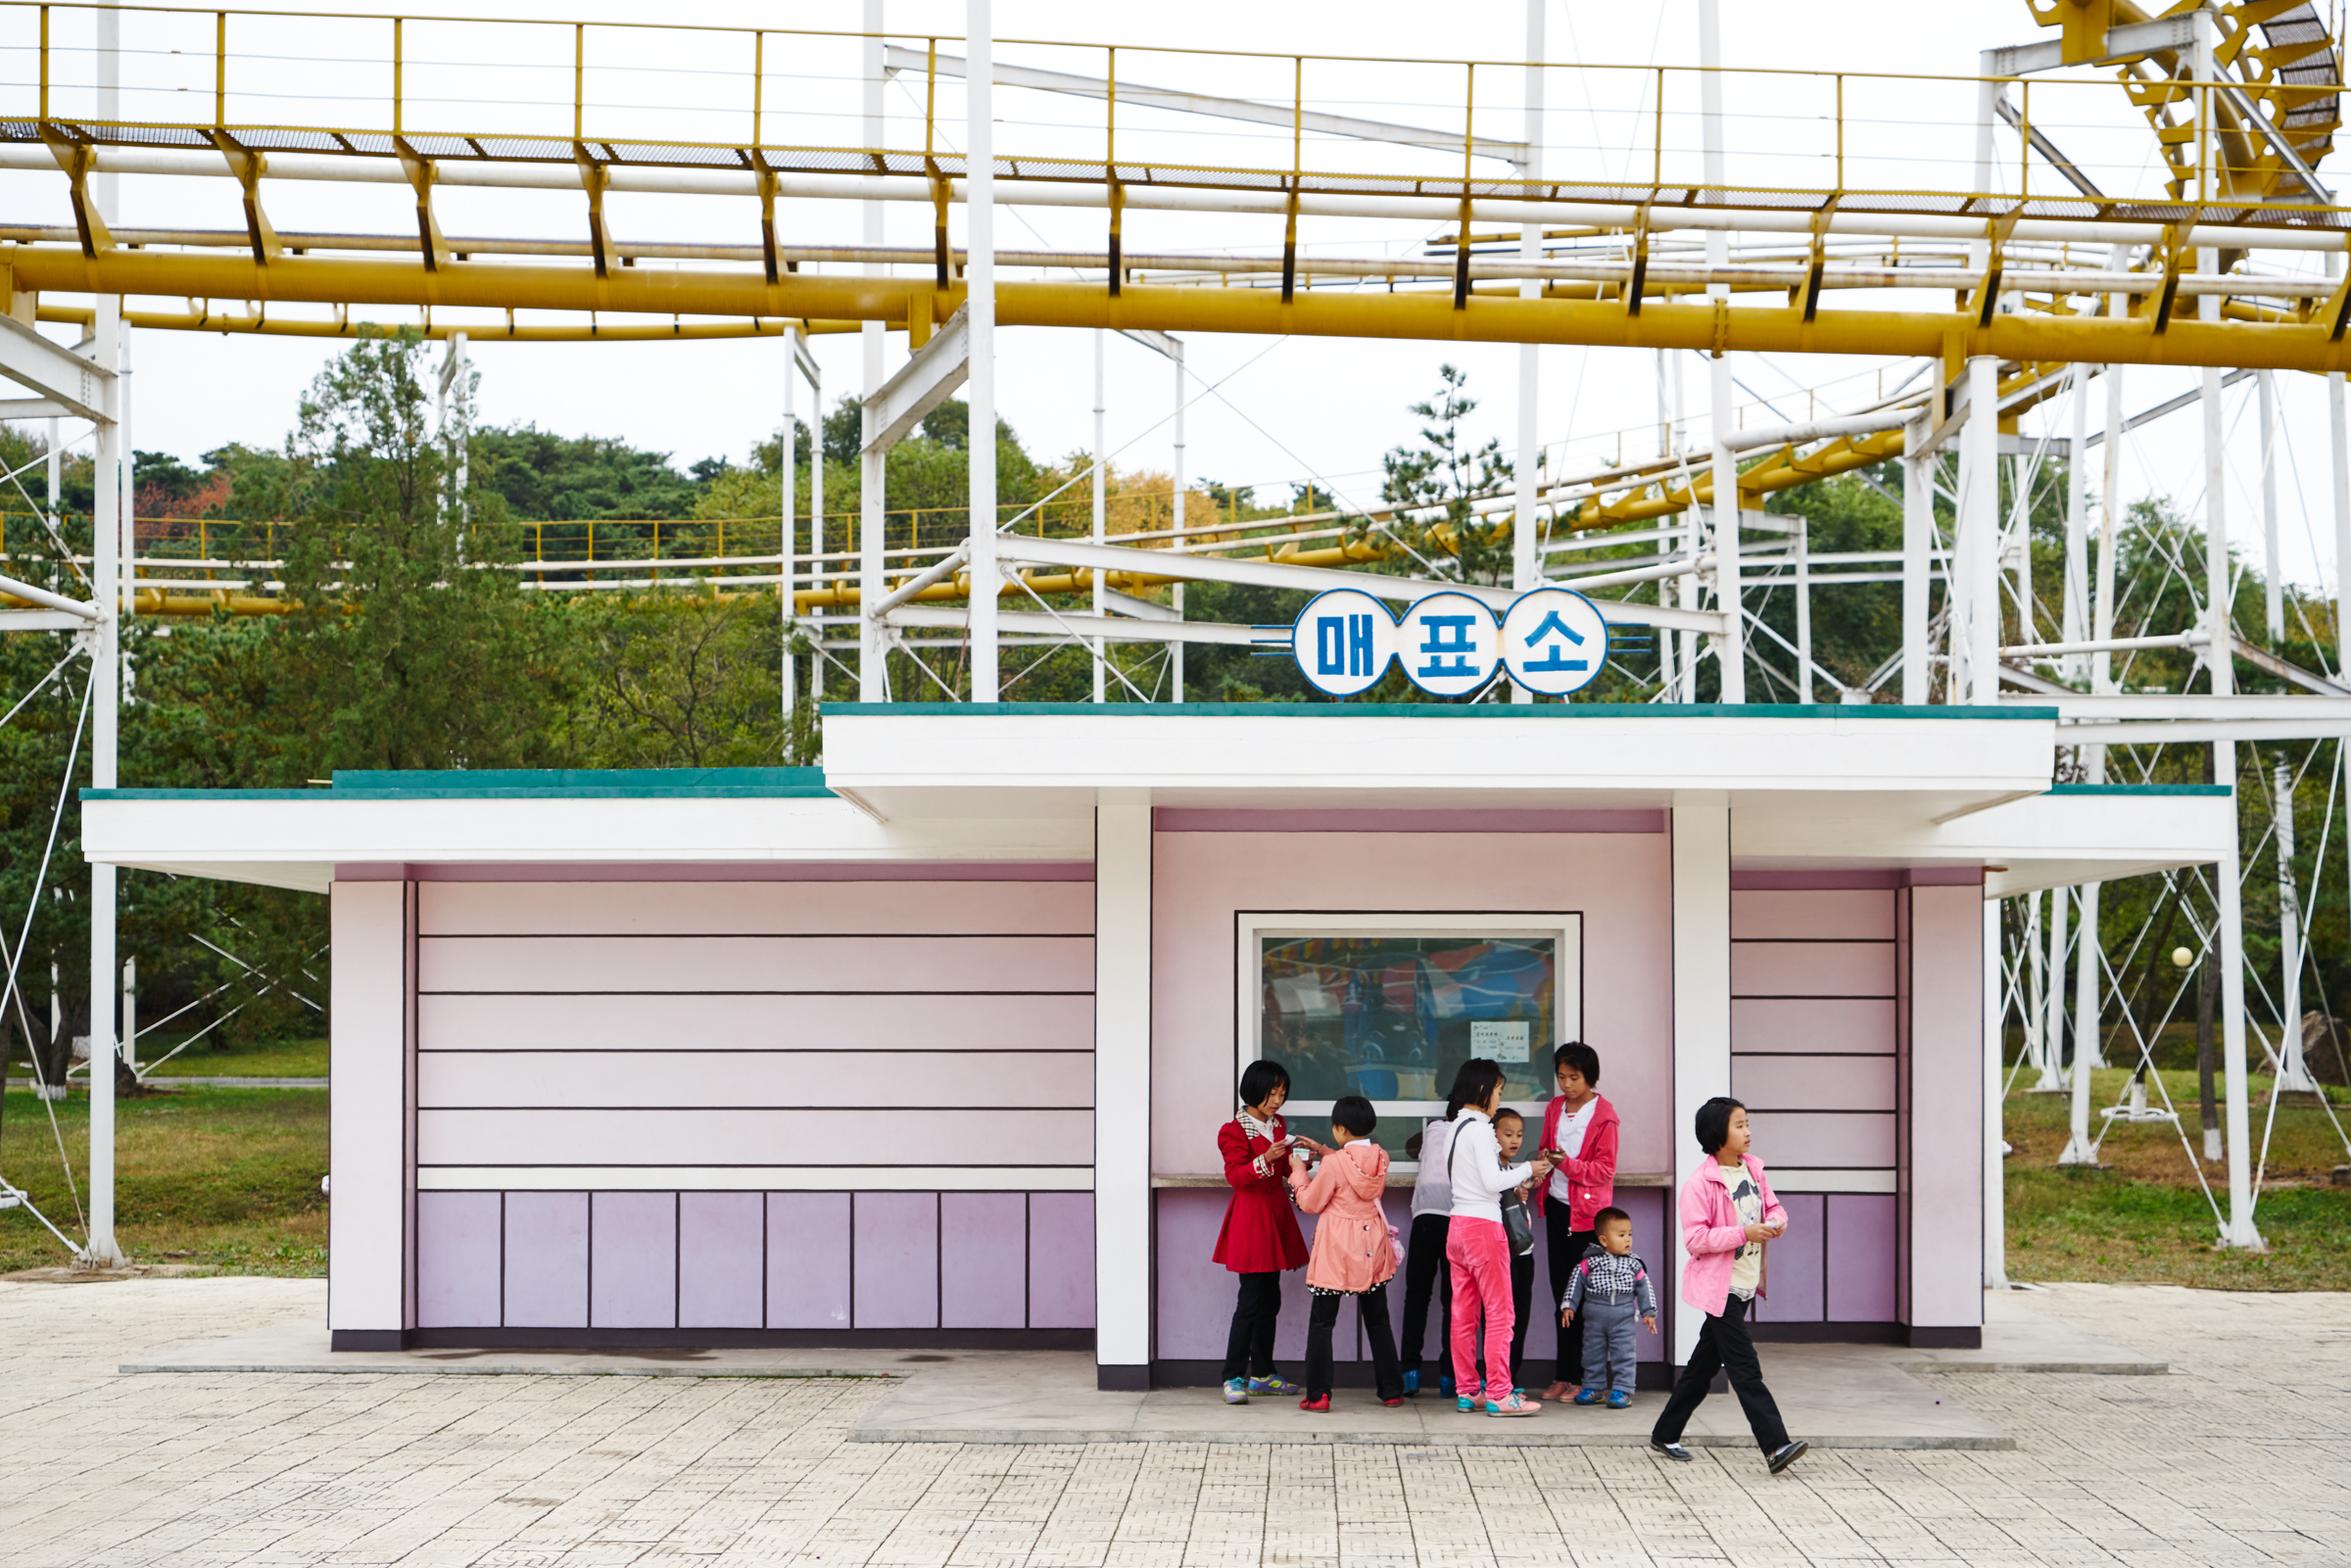 THE OLD PYOUNGYANG THEME PARK.